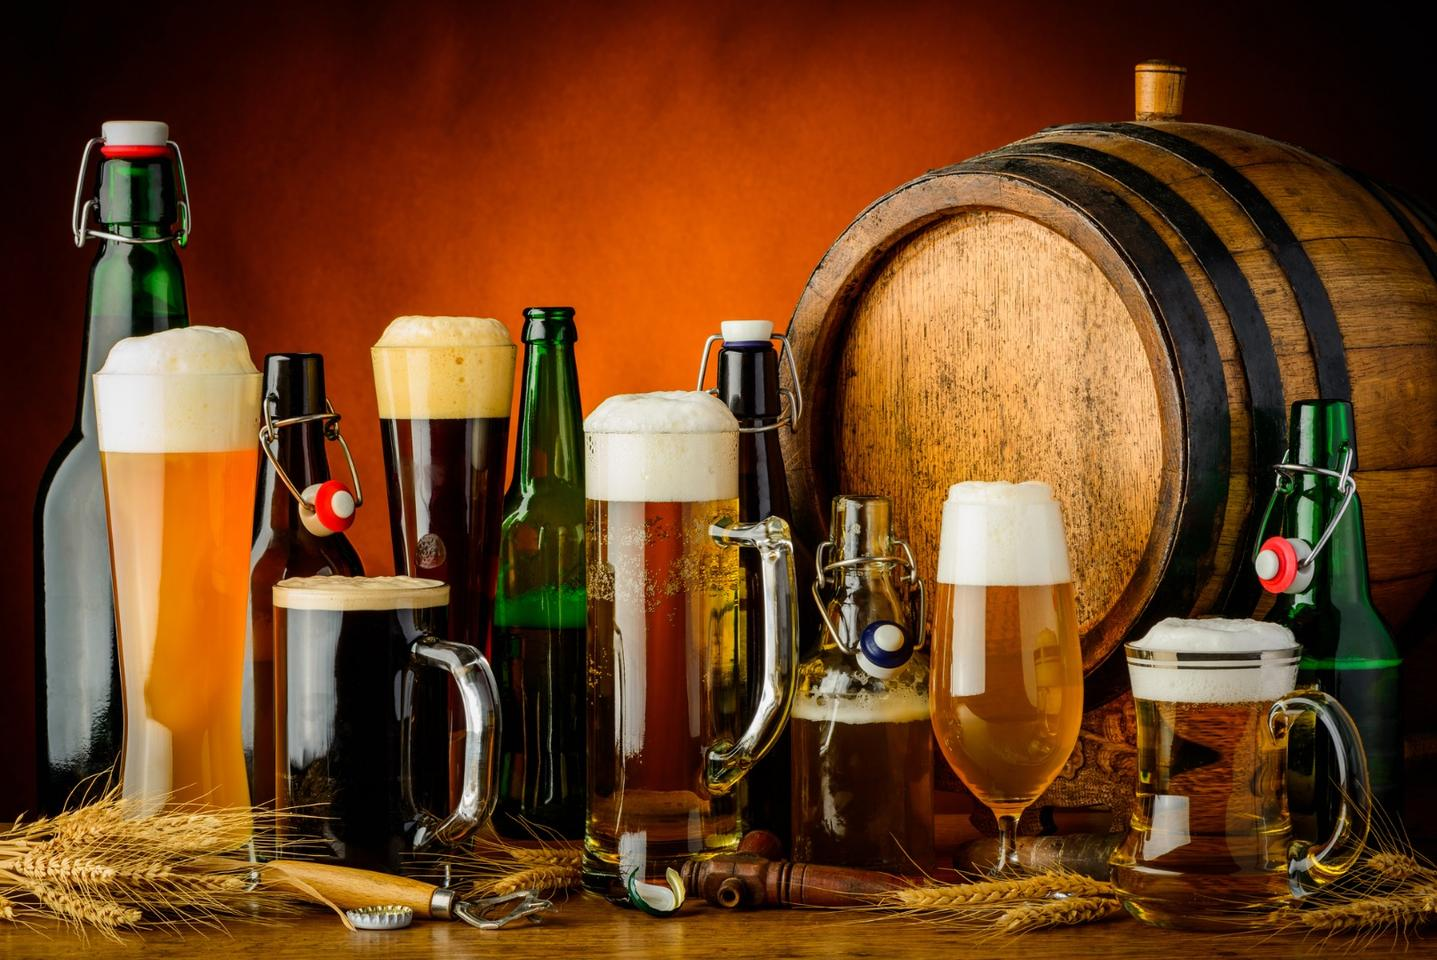 The association between early-onset dementia and excessive alcohol consumption has been solidified in the new, large-scale study